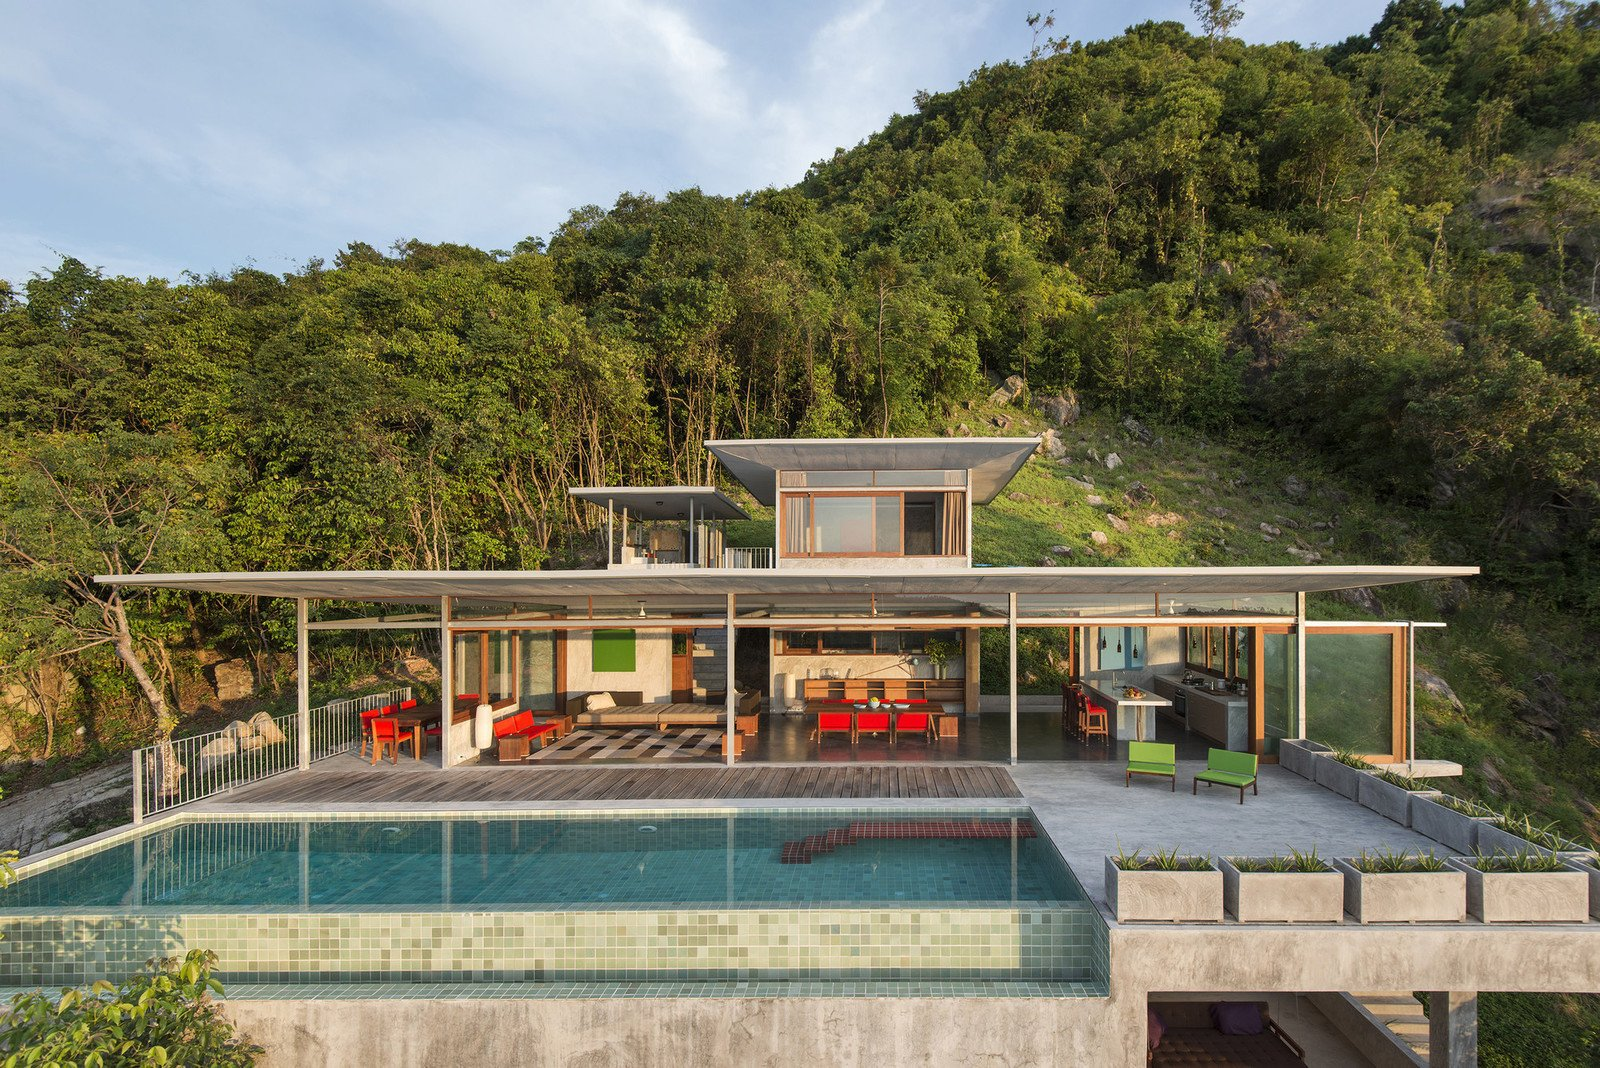 Outdoor, Grass, Infinity, Slope, Swimming, Trees, Raised Planters, Back Yard, Concrete, and Metal  Best Outdoor Metal Slope Photos from Take a Trip to This Photographer-Designed Concrete Home in Thailand